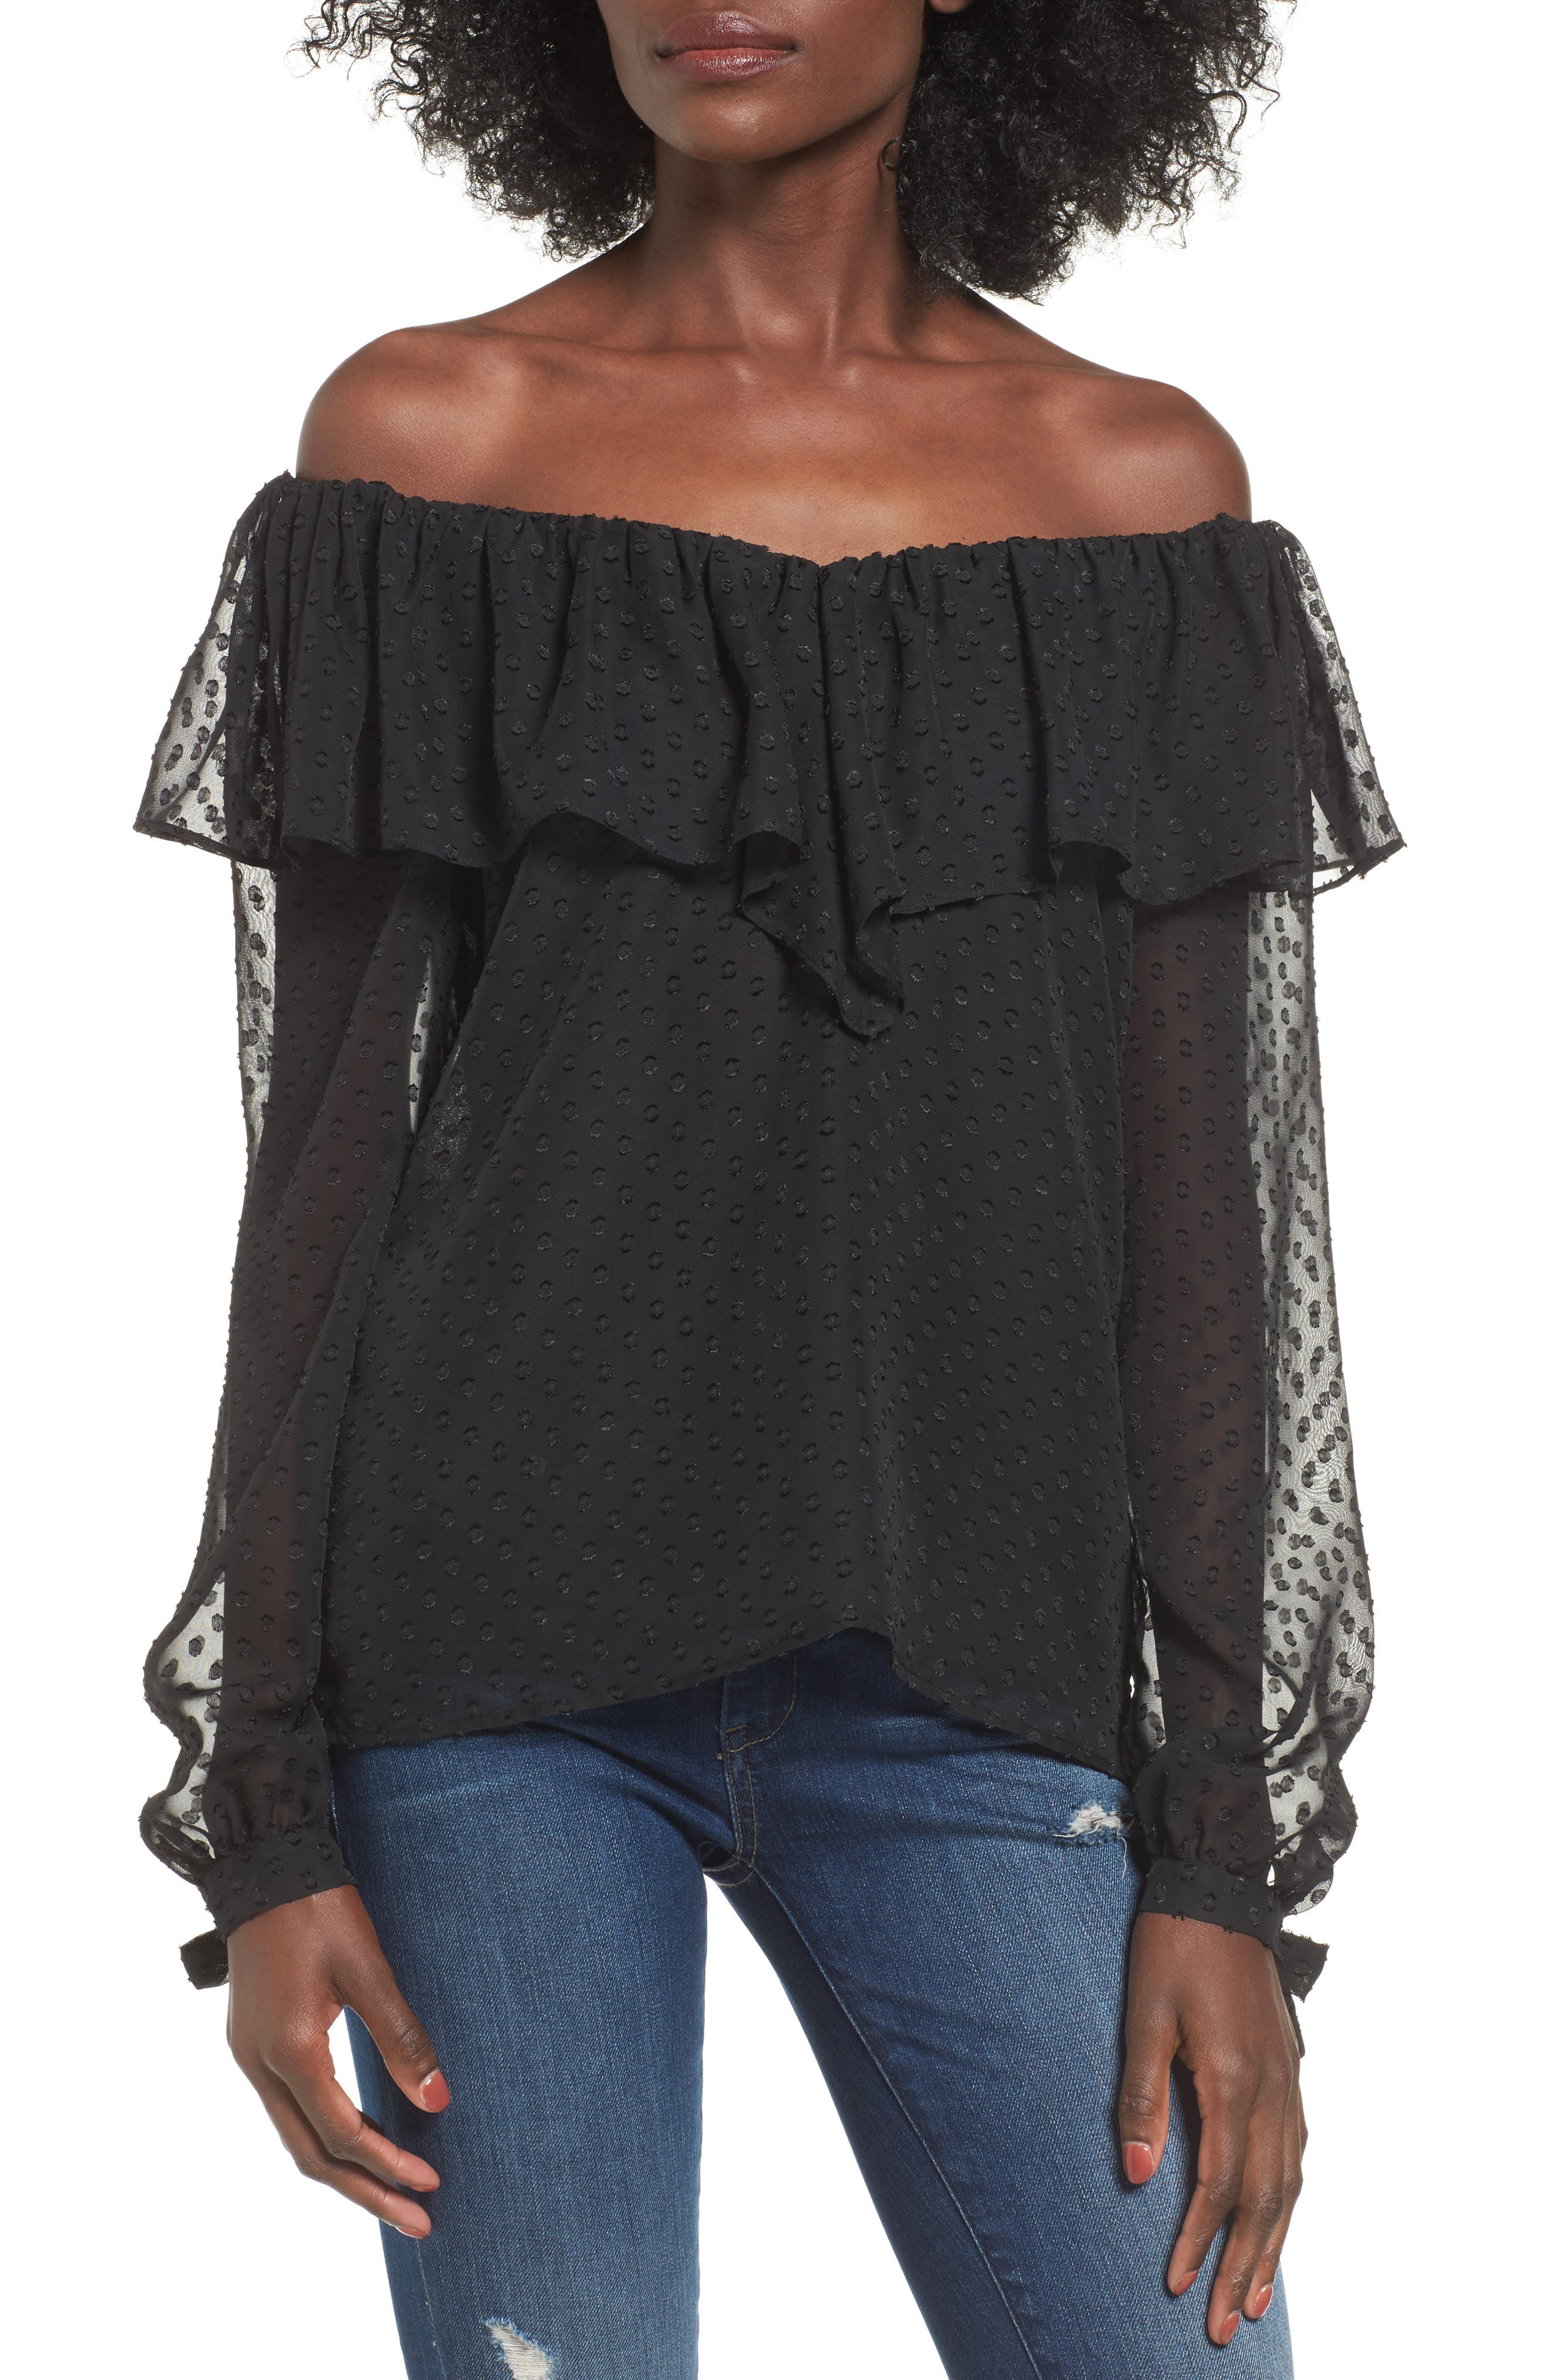 Alternate Image 1 Selected - WAYF Kiere Ruffle Off the Shoulder Top